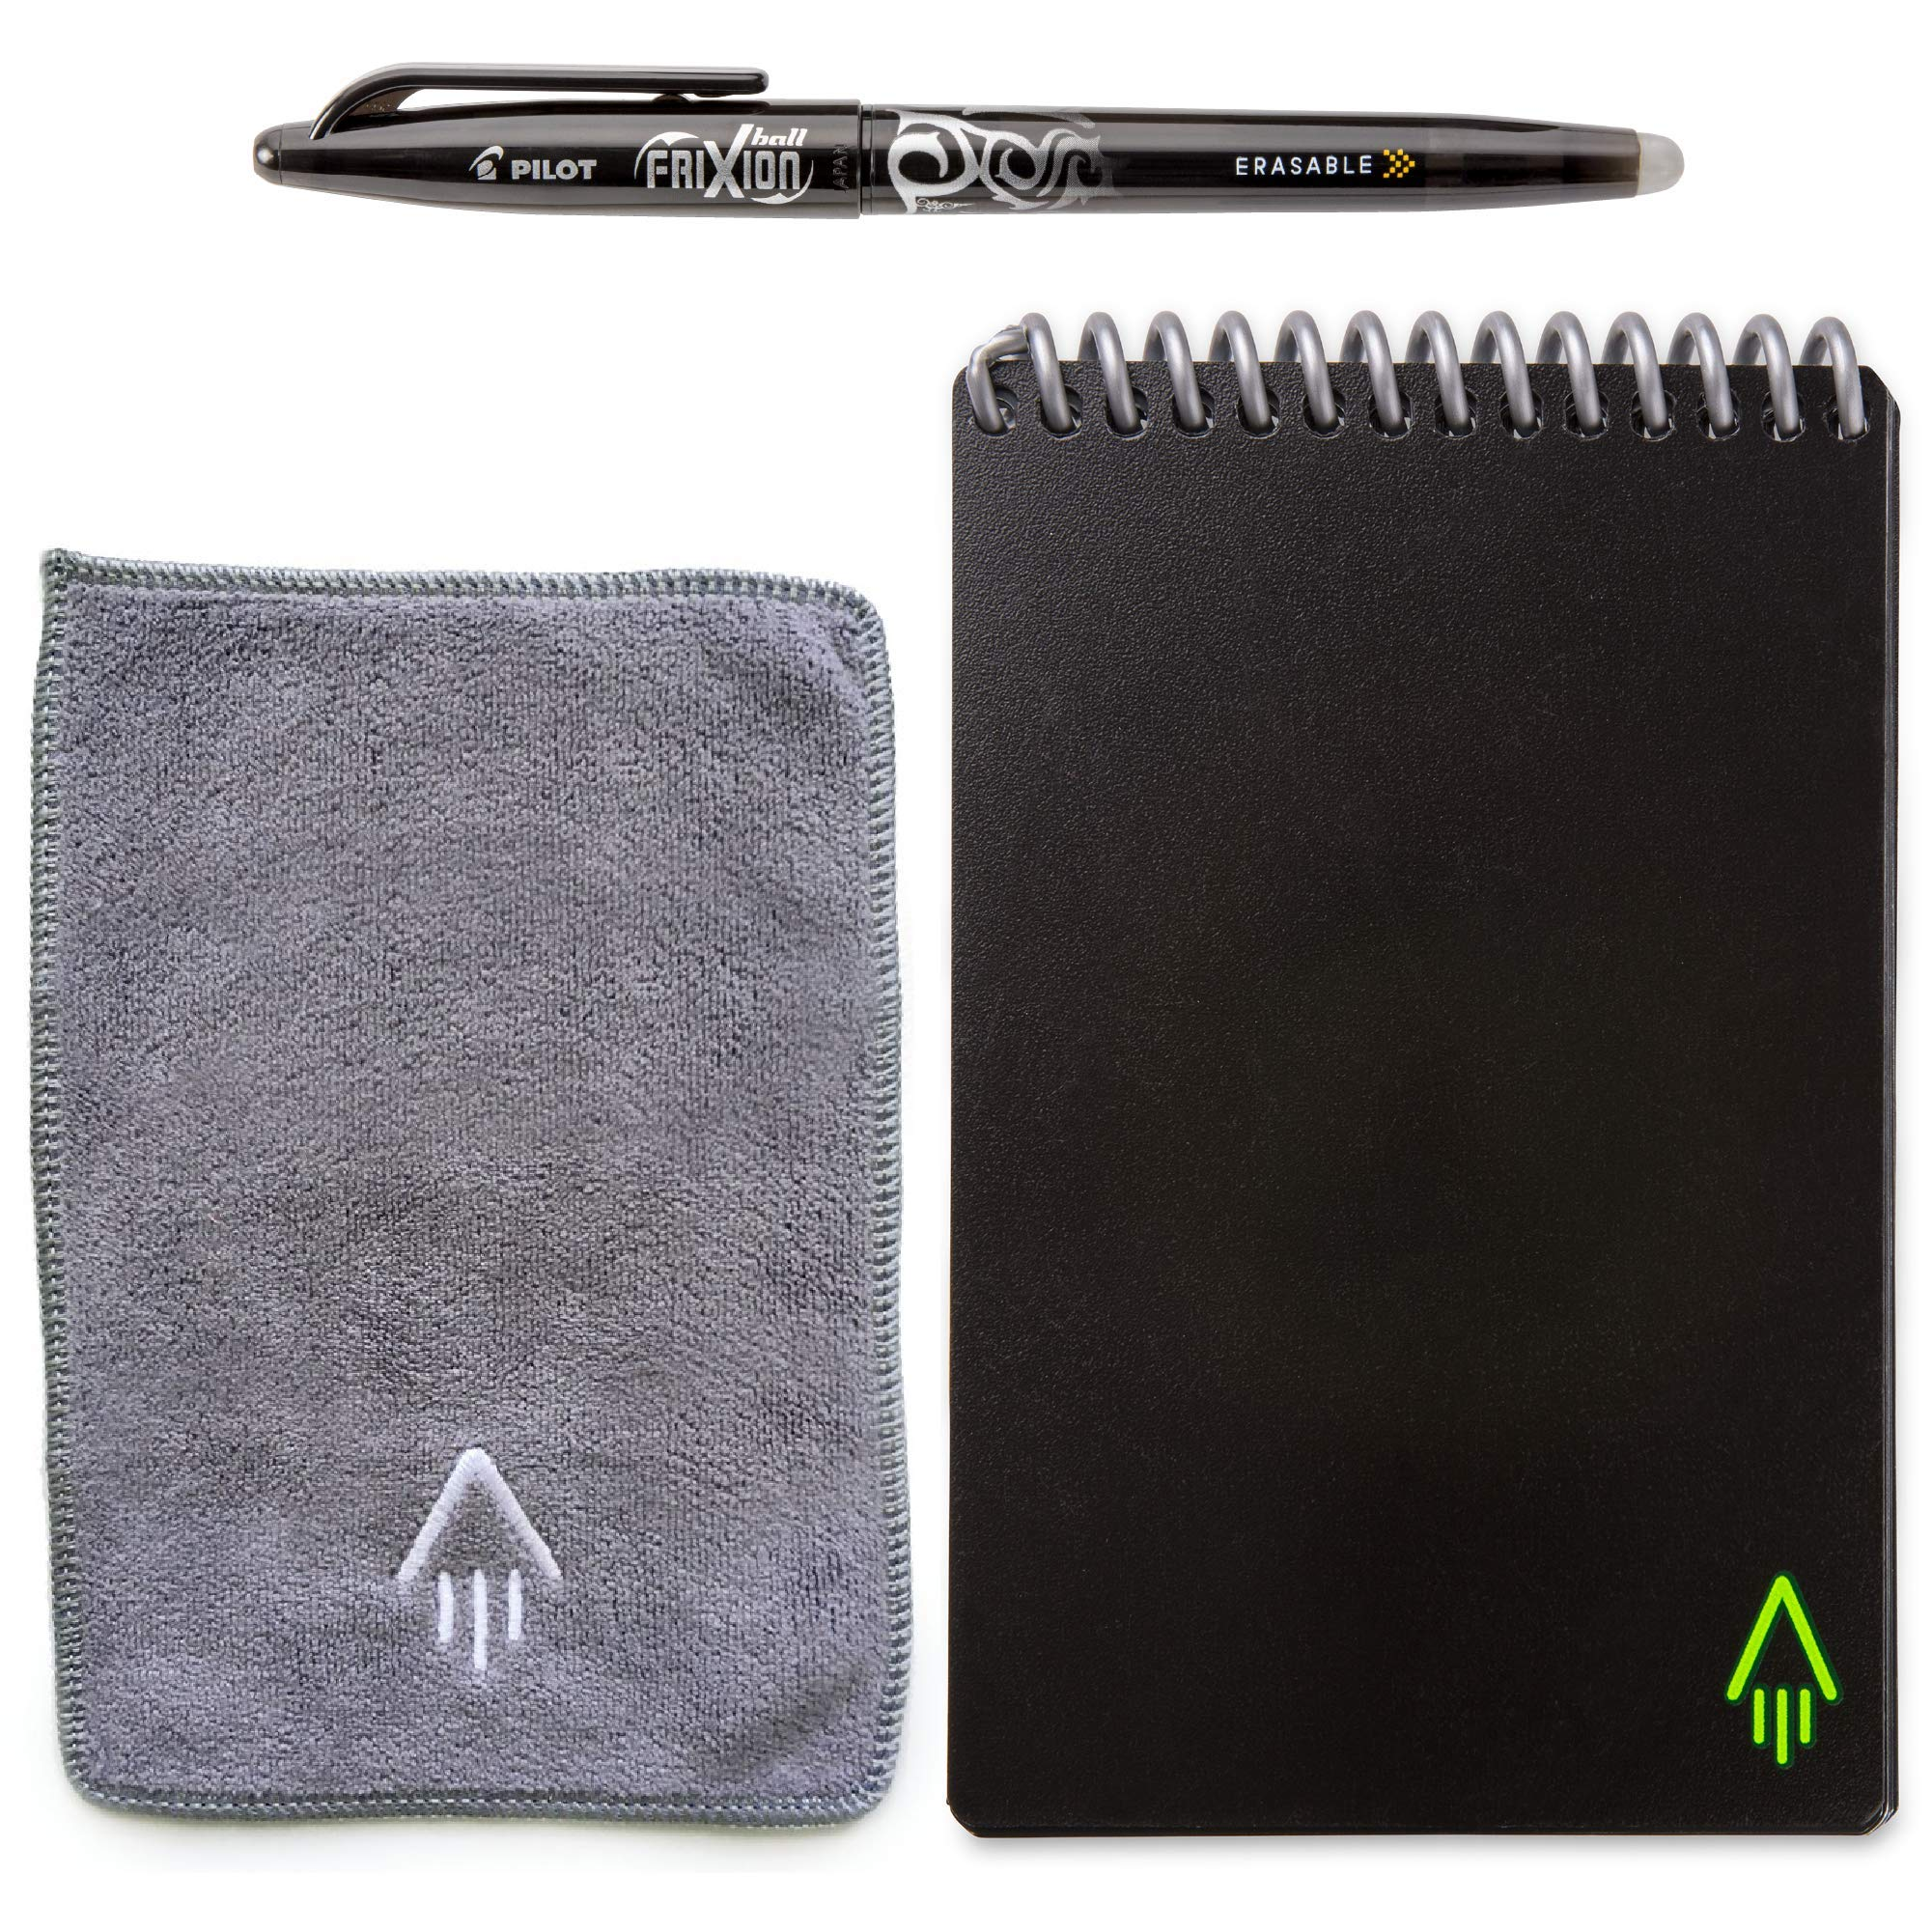 Rocketbook Everlast Smart Reusable Notebook - Dotted Grid Eco-Friendly Notebook with 1 Pilot Frixion Pen & 1 Microfiber Cloth Included - Infinity Black Cover, Mini Size (3.5'' x 5.5'') by Rocketbook